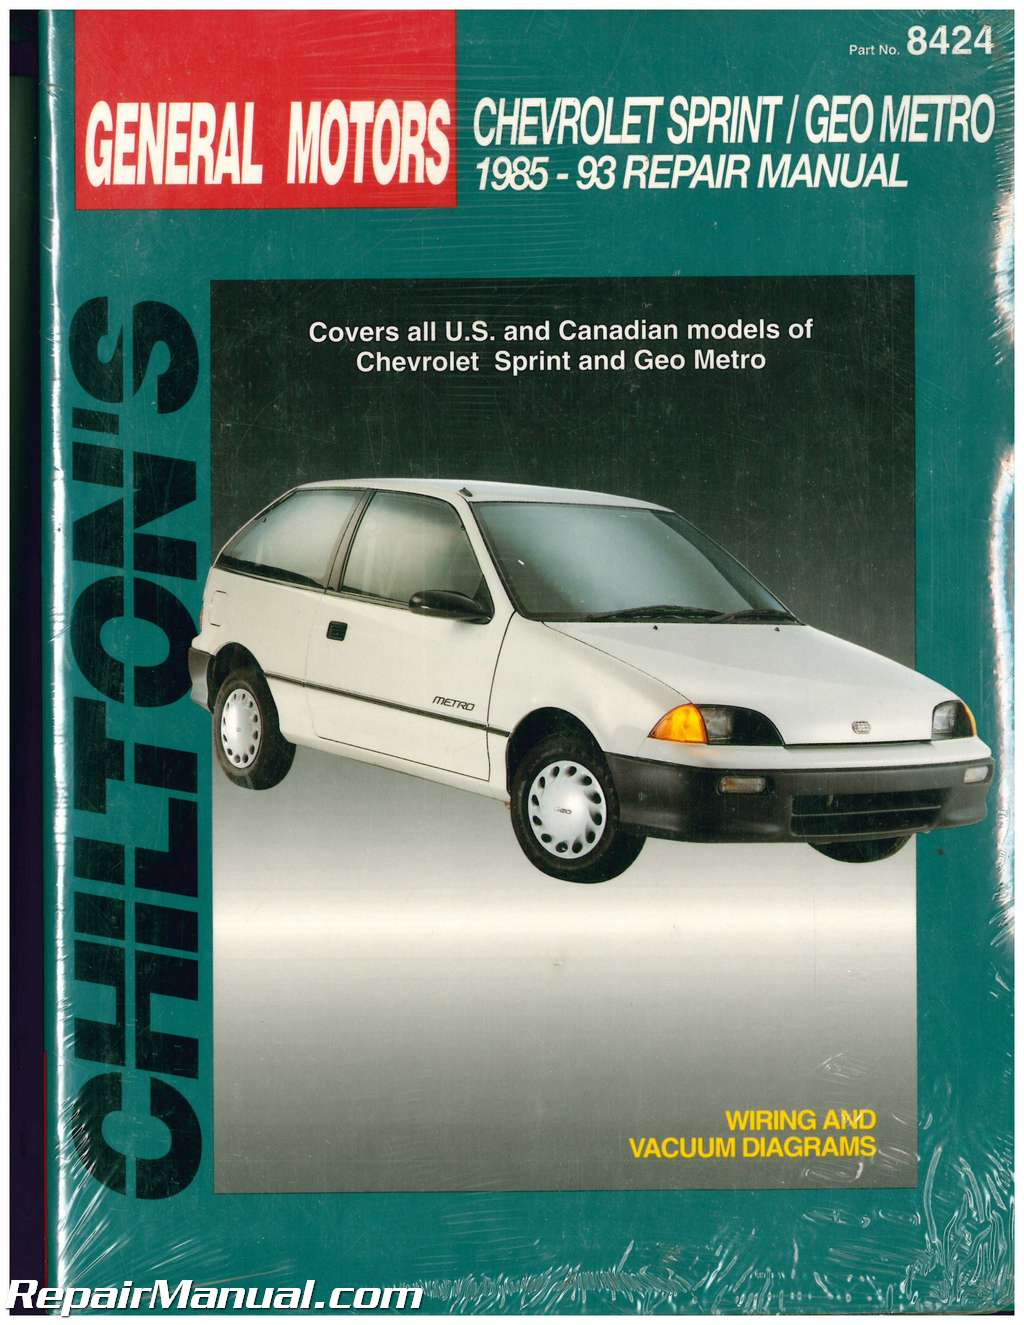 Chilton General Motors Geo Metro Chevrolet Sprint 1985